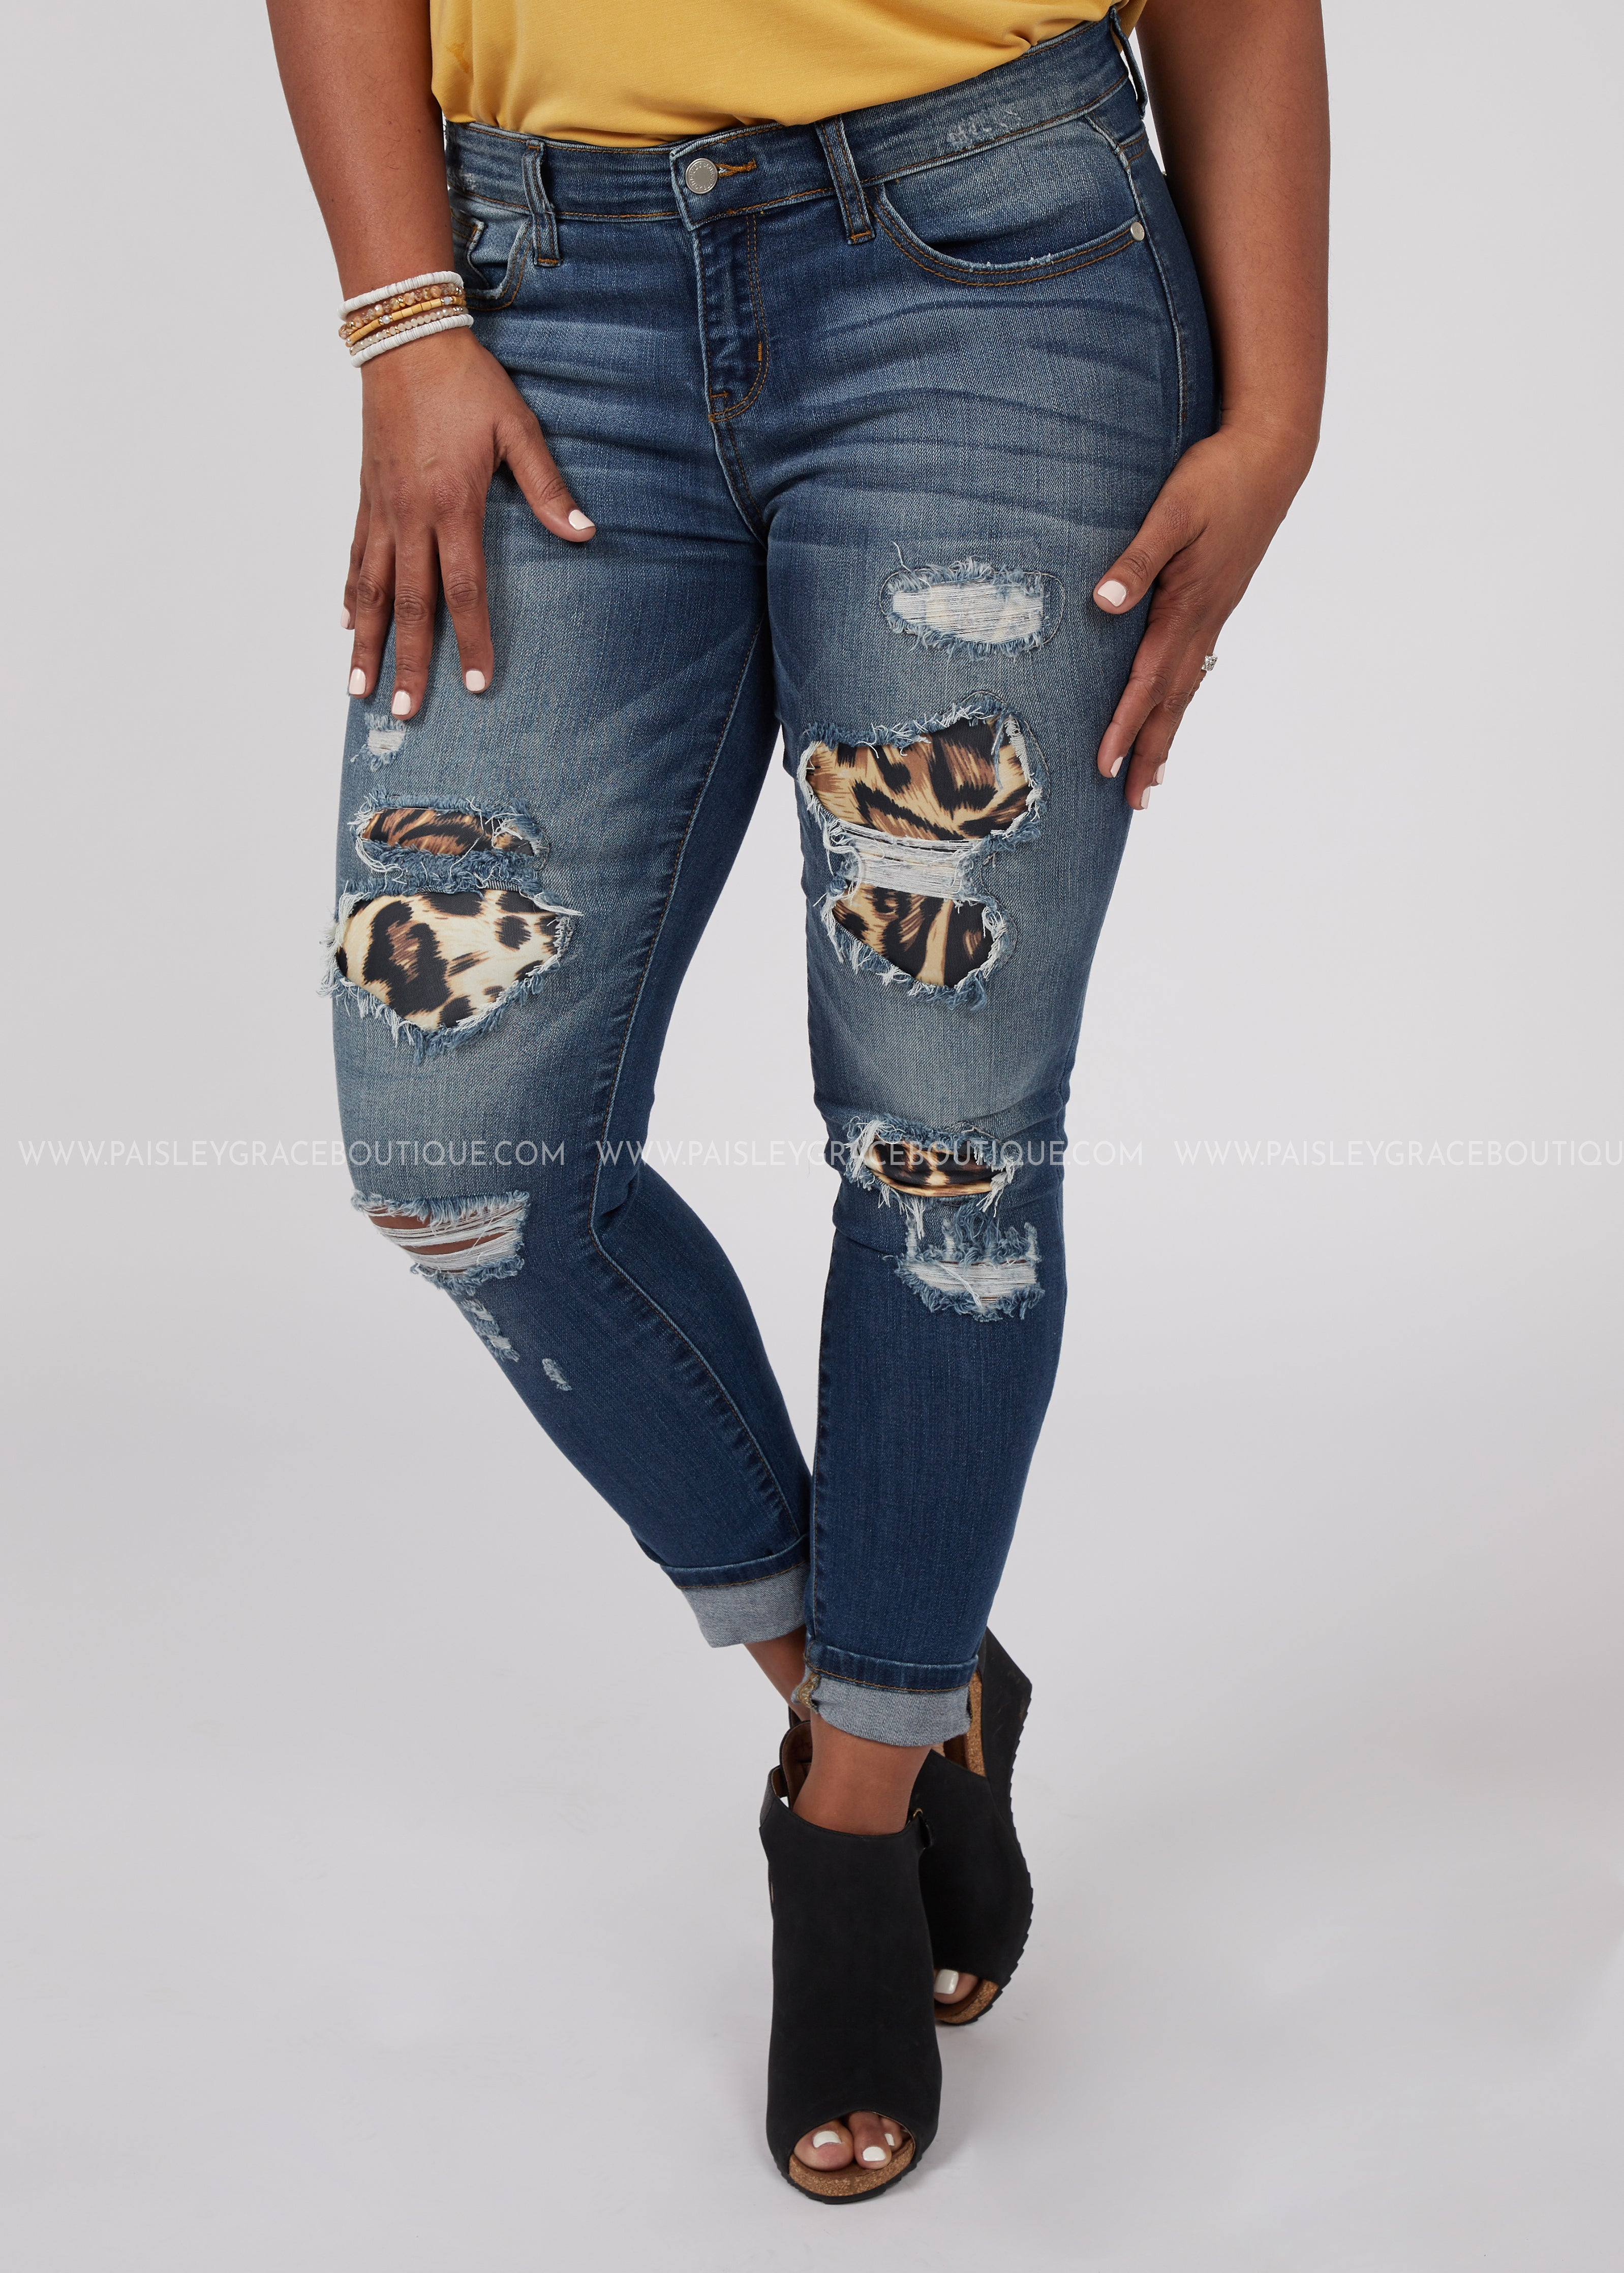 Wild & Chic Distressed Jeans-RESTOCK